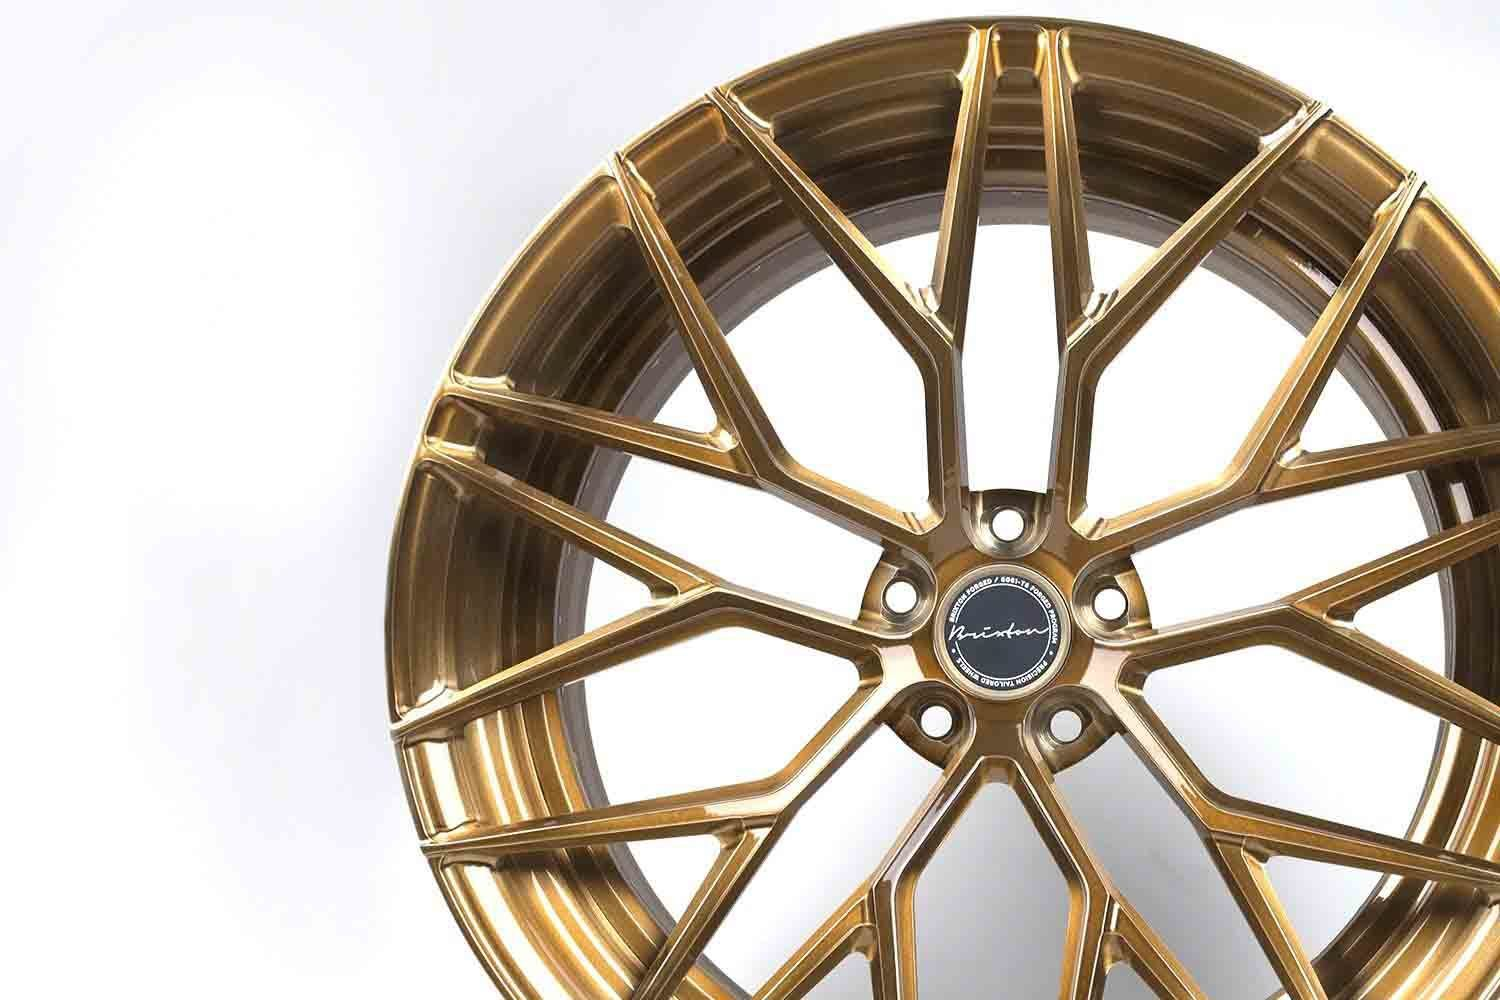 images-products-1-2313-232974601-brixton-forged-cm10-brushed-olympic-bronze-012.jpg